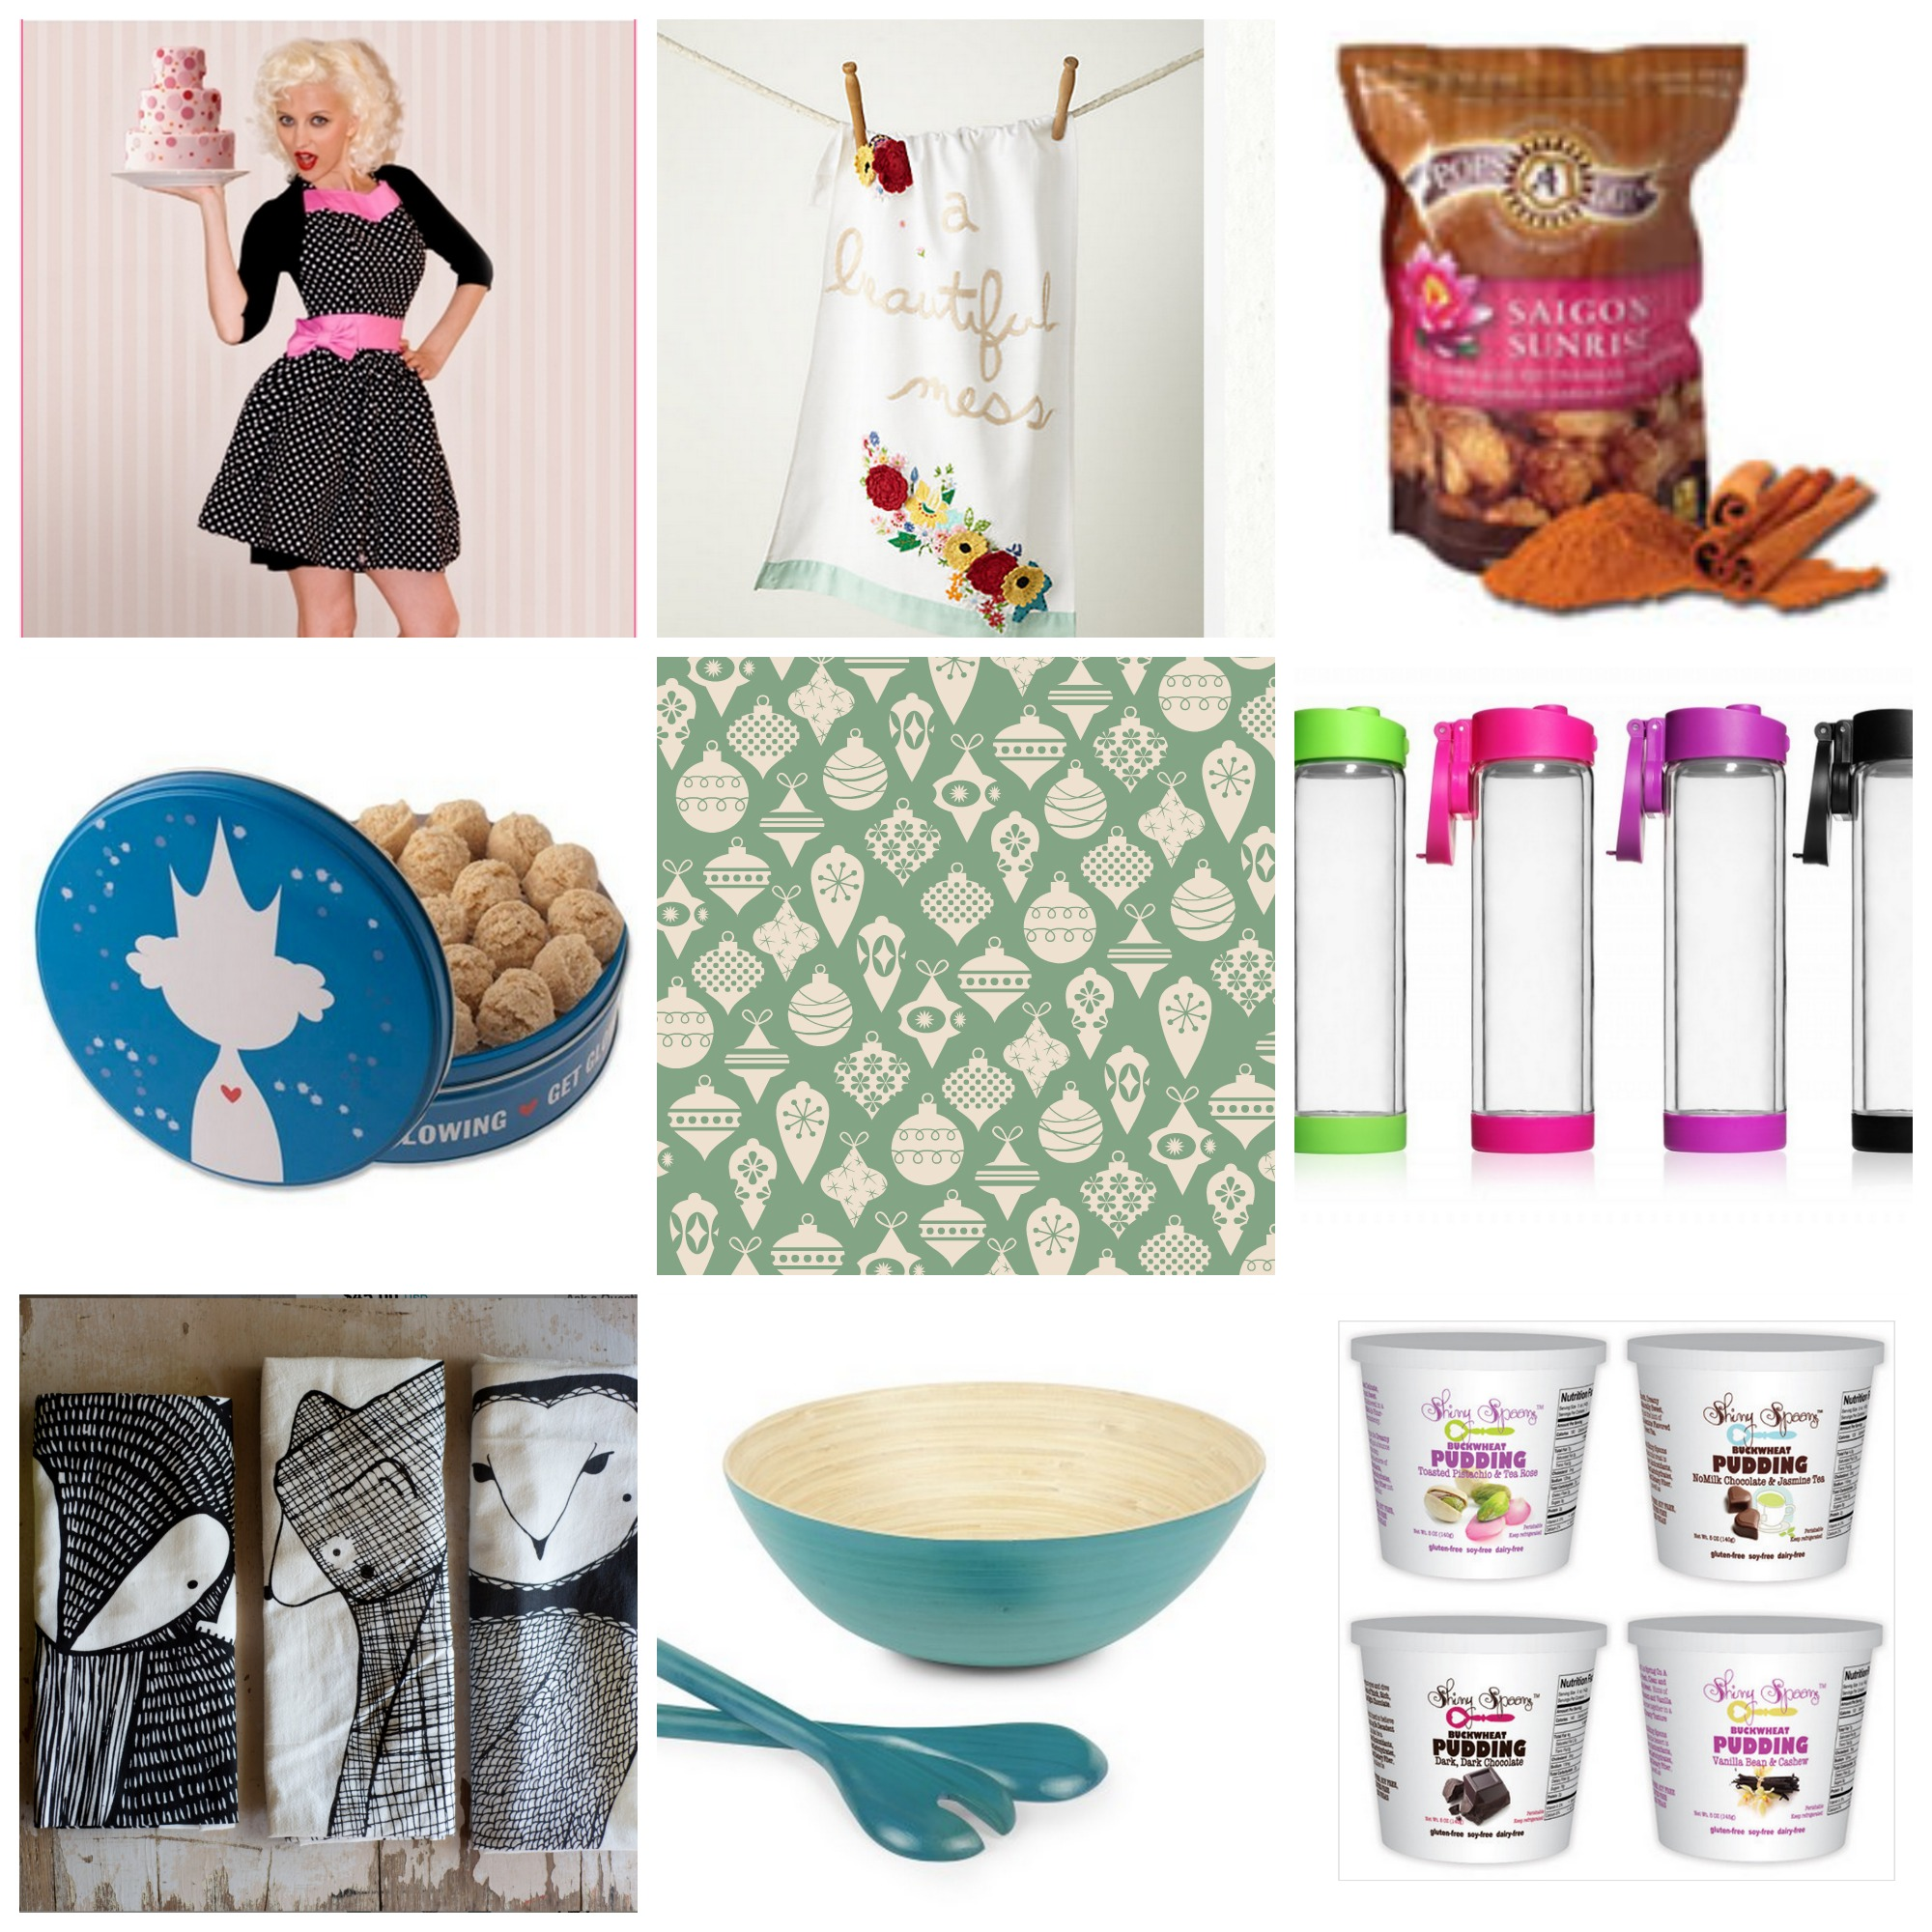 Leslie Durso's Kitchen Gift Guide